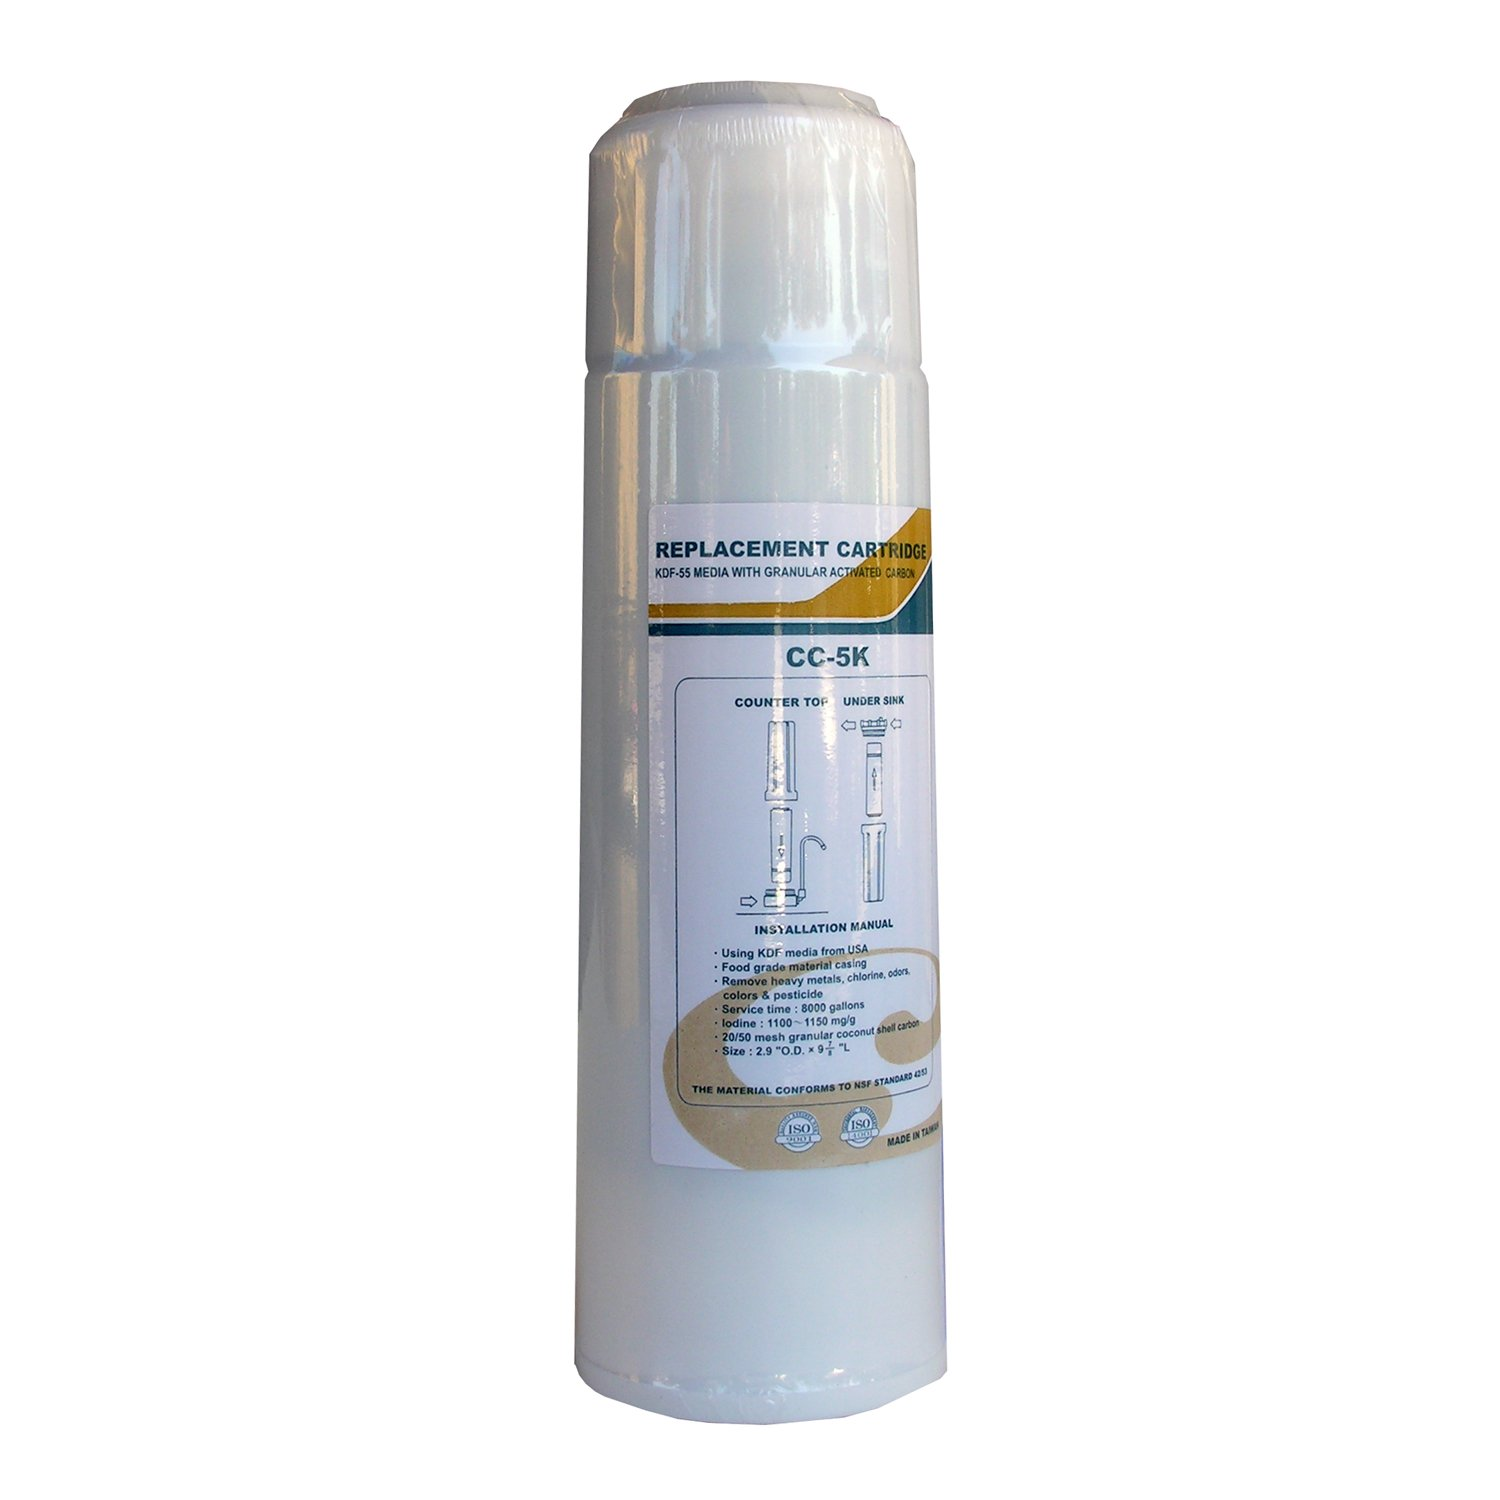 2 5//8-Inch OD x 9 7//8-Inch LASCO 37-1870P Water Filter Replacement Cartridge with 20 x 50 Acid Washed Carbon Cartridge